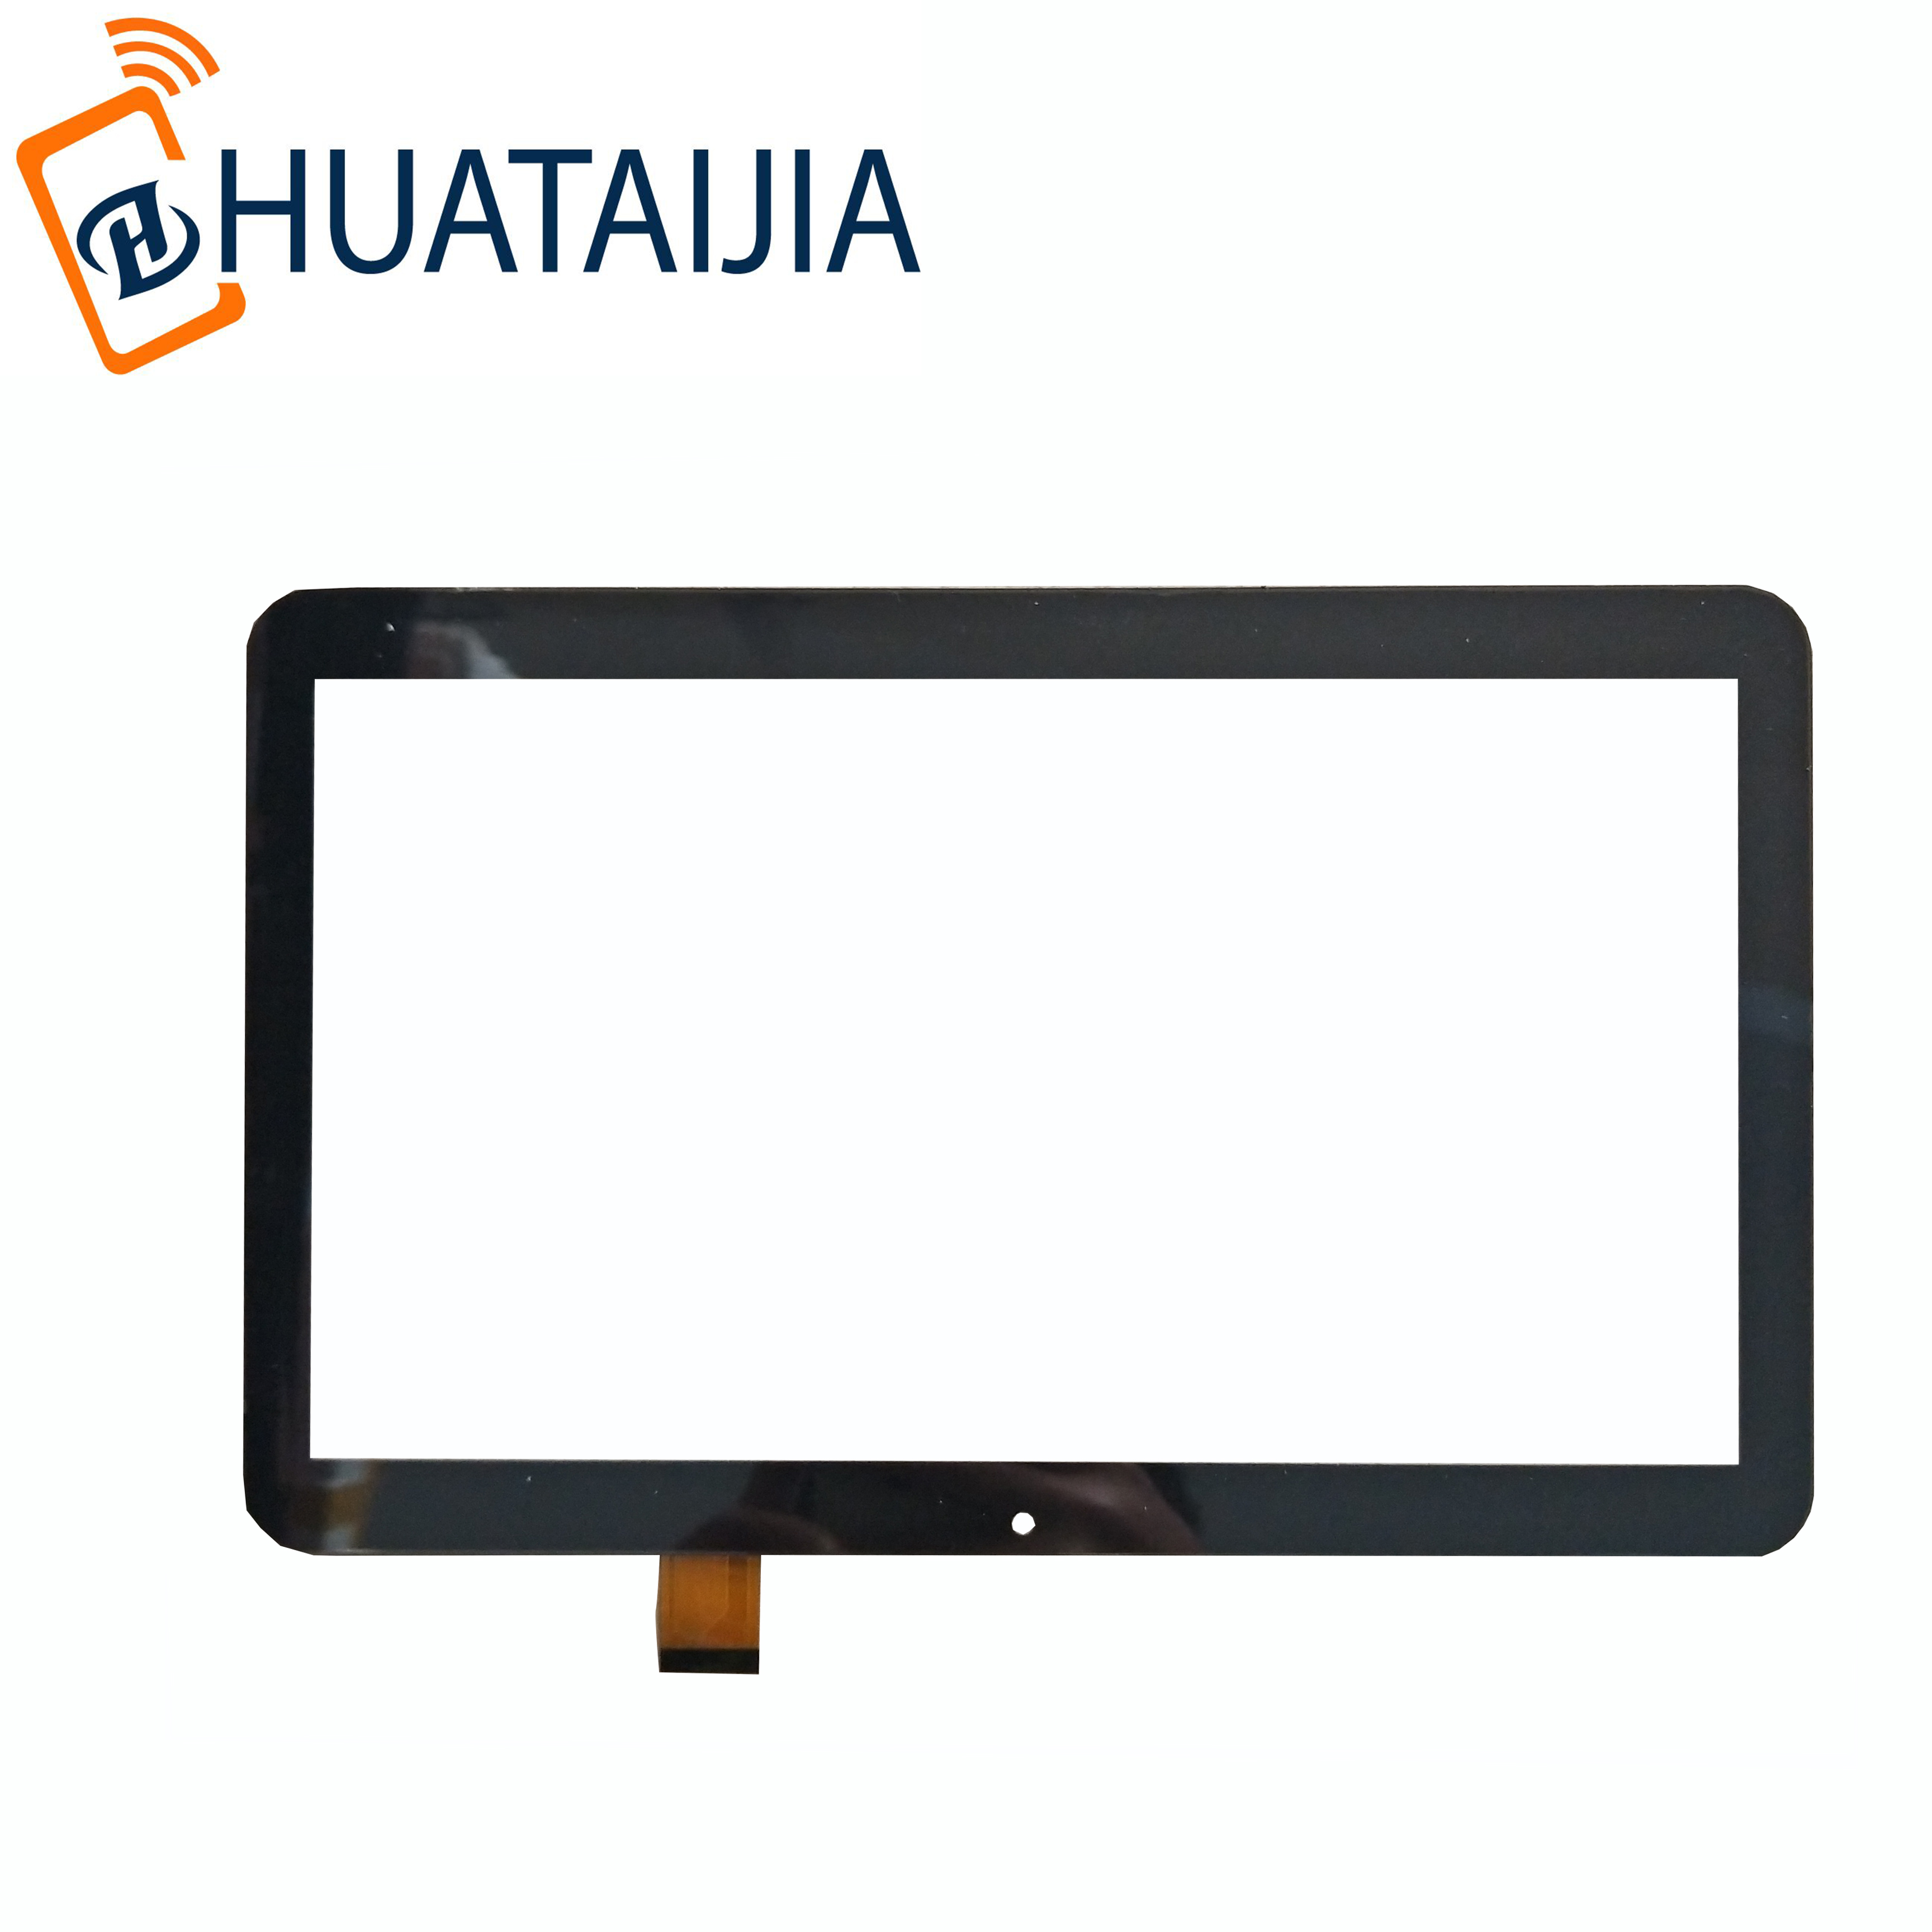 10.1 Inch For Irbis TZ179 Touch Screen Panel Digitizer Sensor Repair Replacement Parts Free Shipping